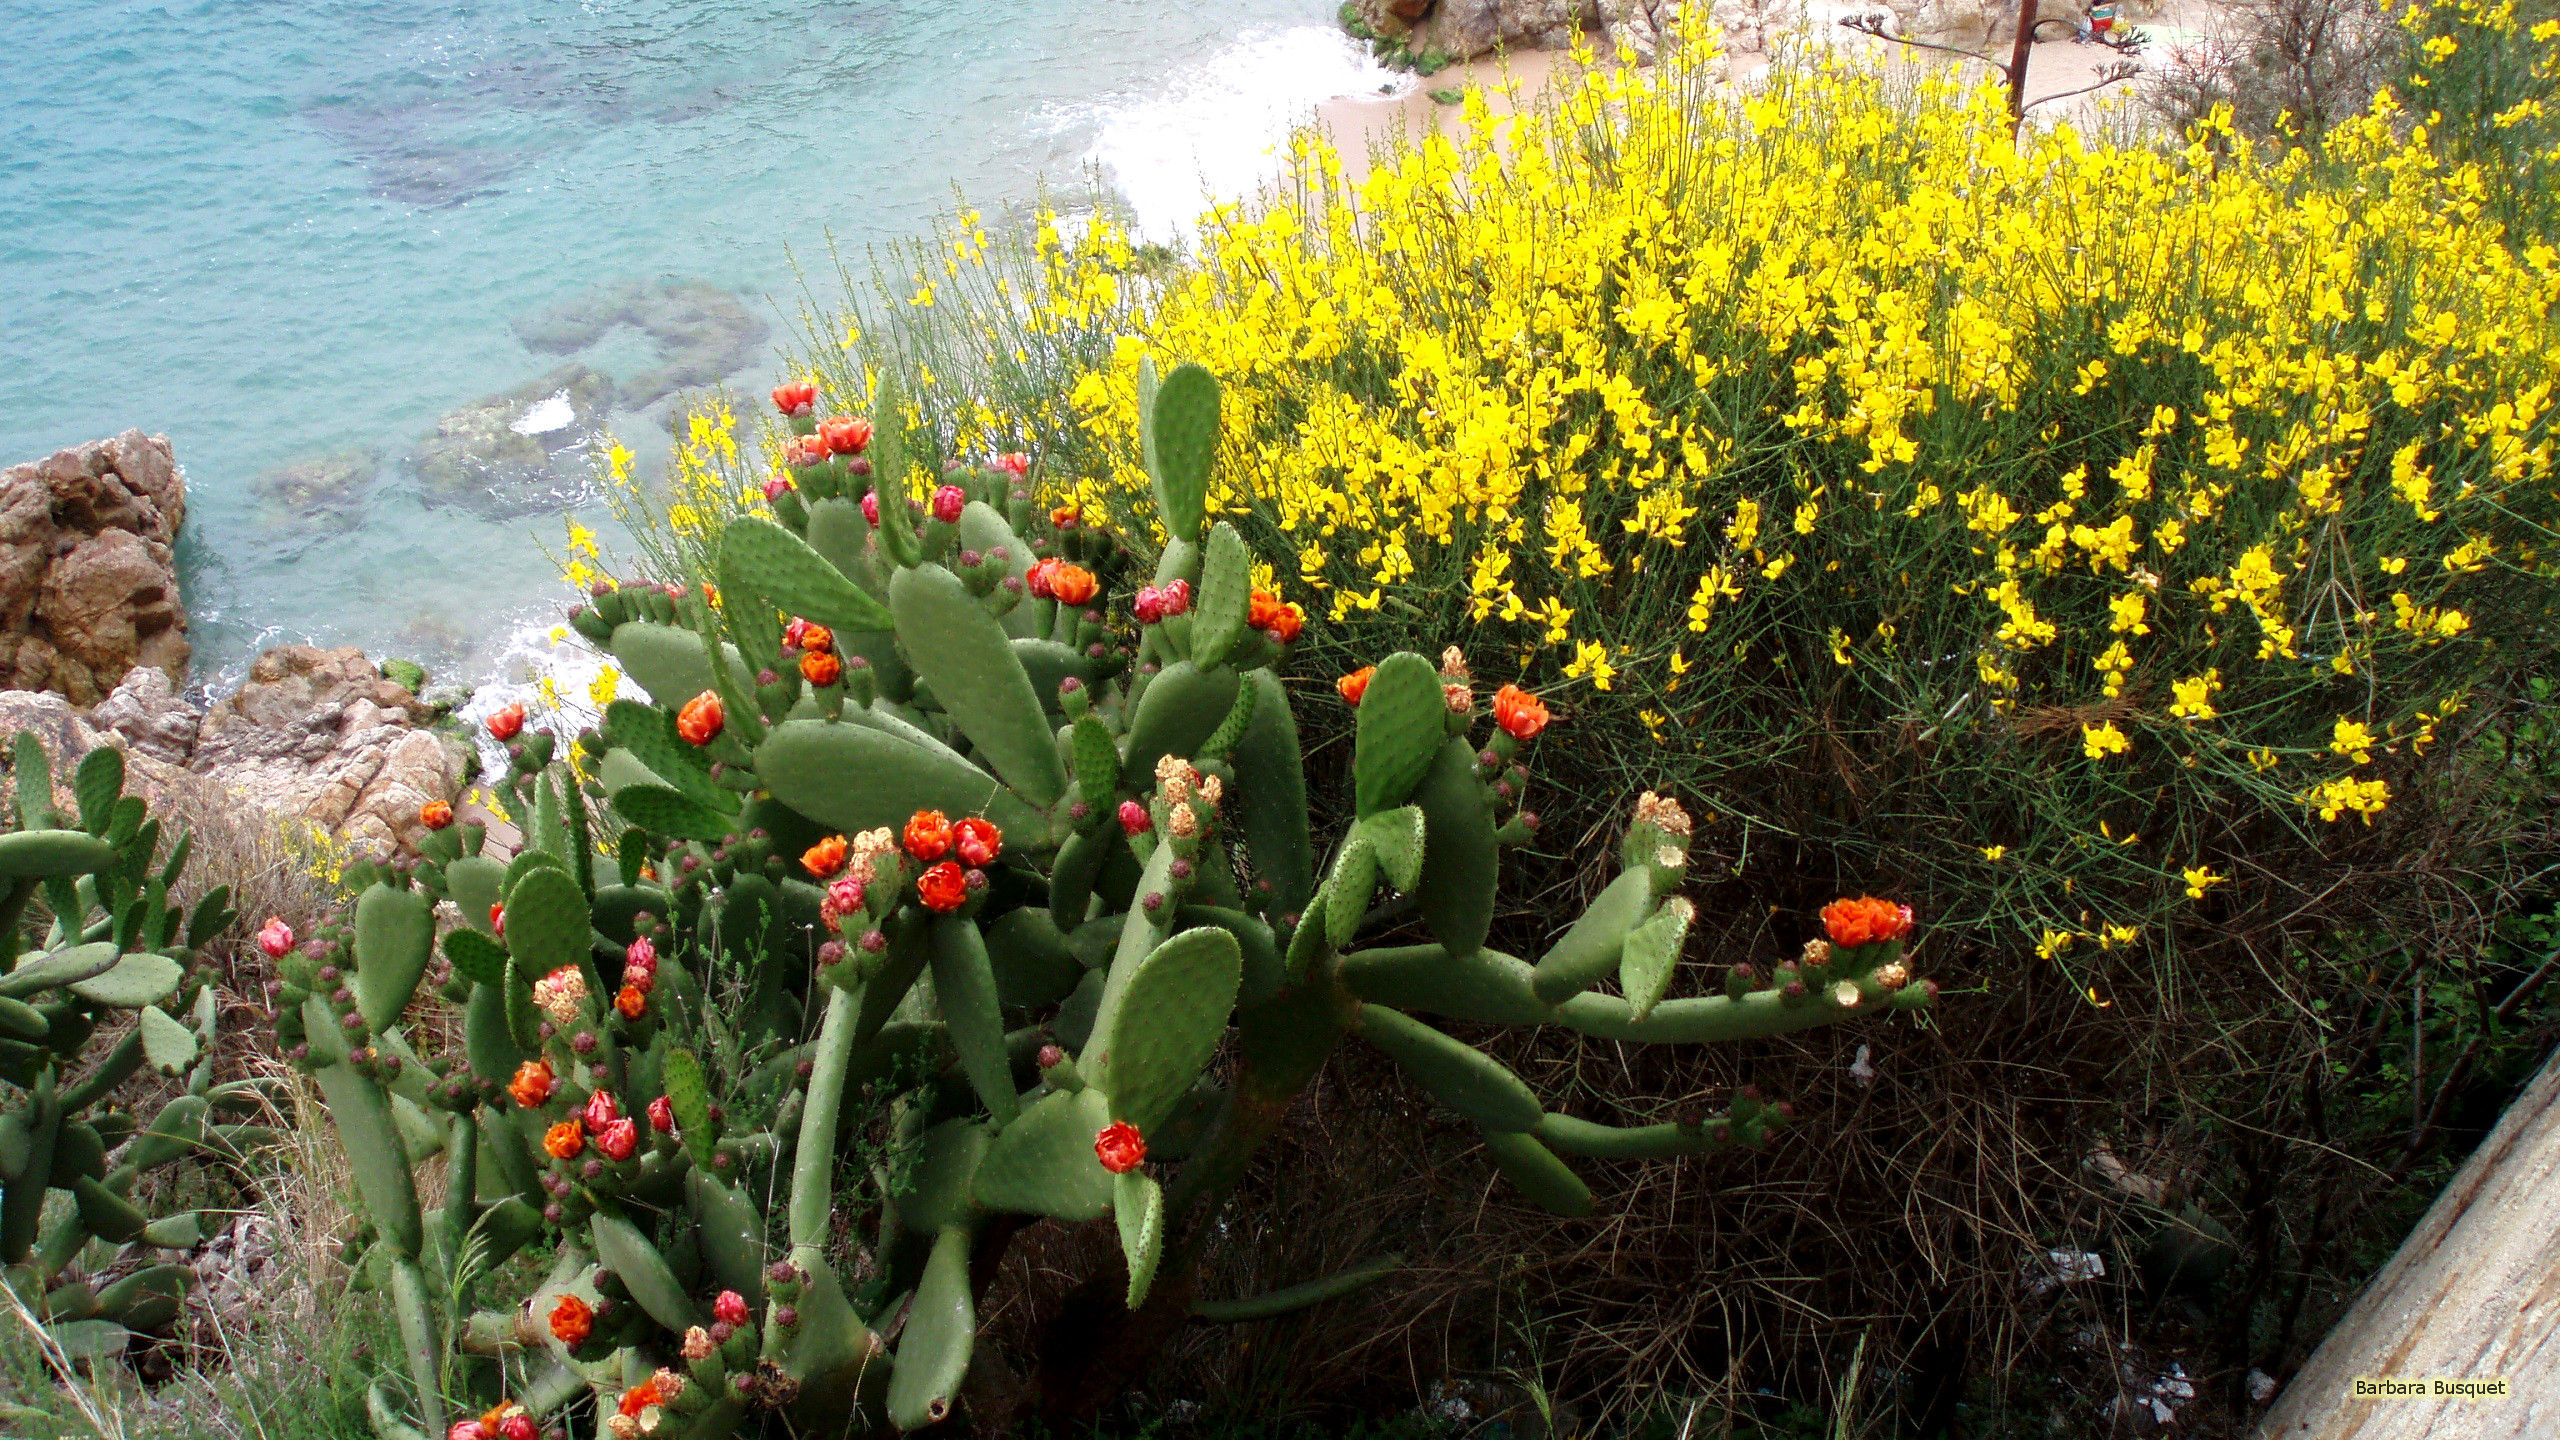 2560x1440 Cactuses and flowers at a beach in Spain. Yellow flowers, and cactuses with small  red flowers.